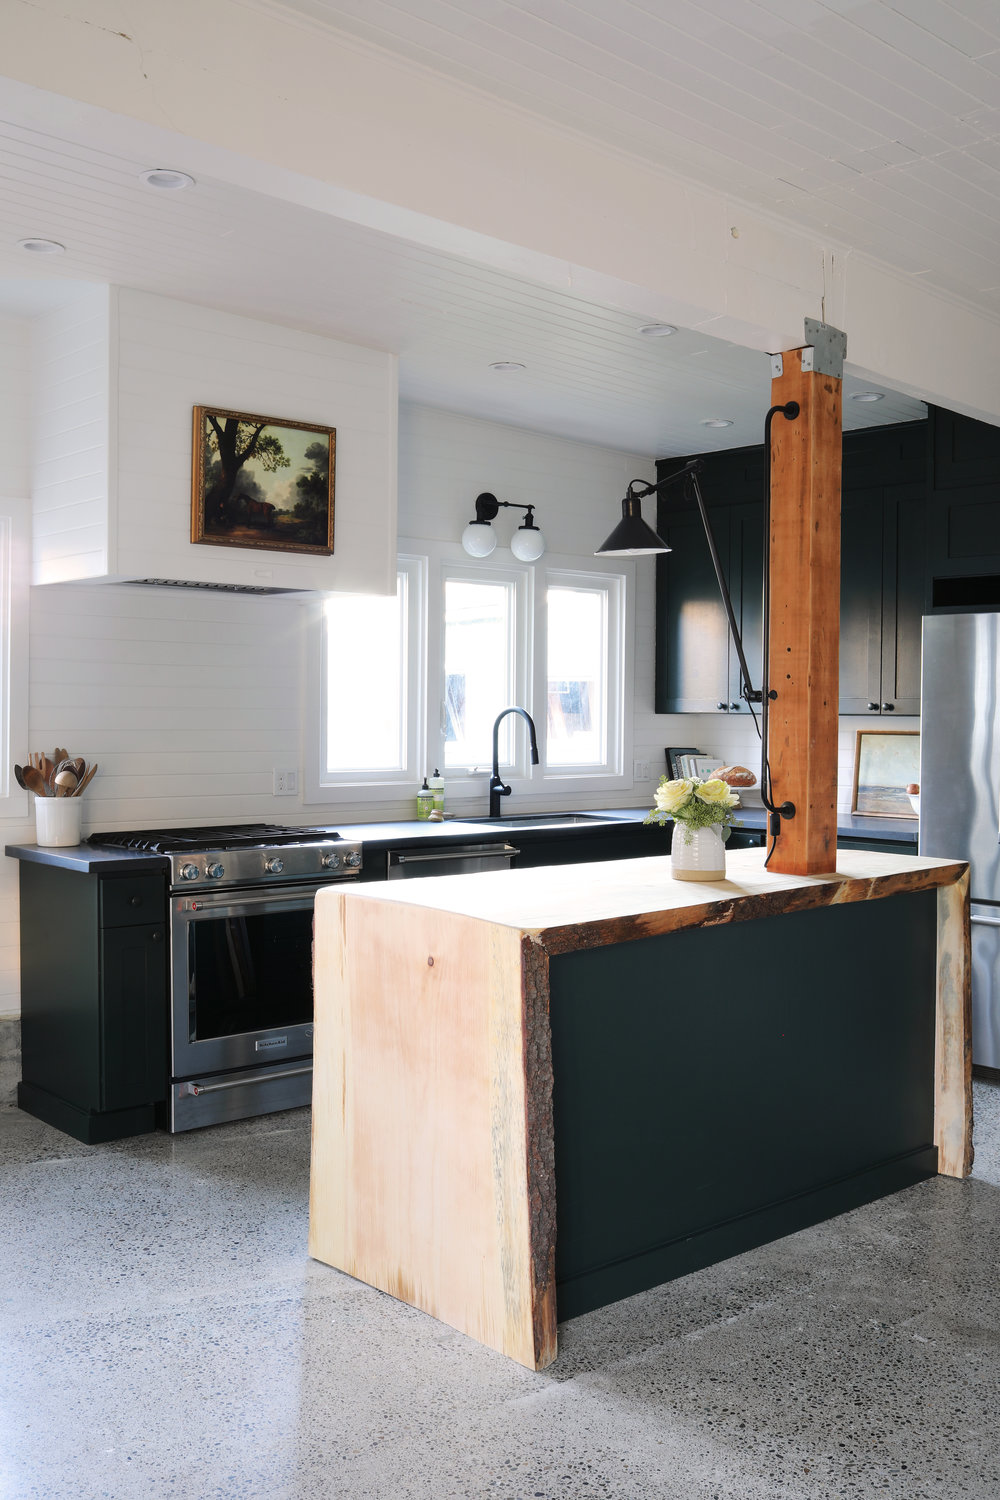 The Grit and Polish - Tacoma Kitchen Reveal Waterfall Live Edge Island Back.jpg